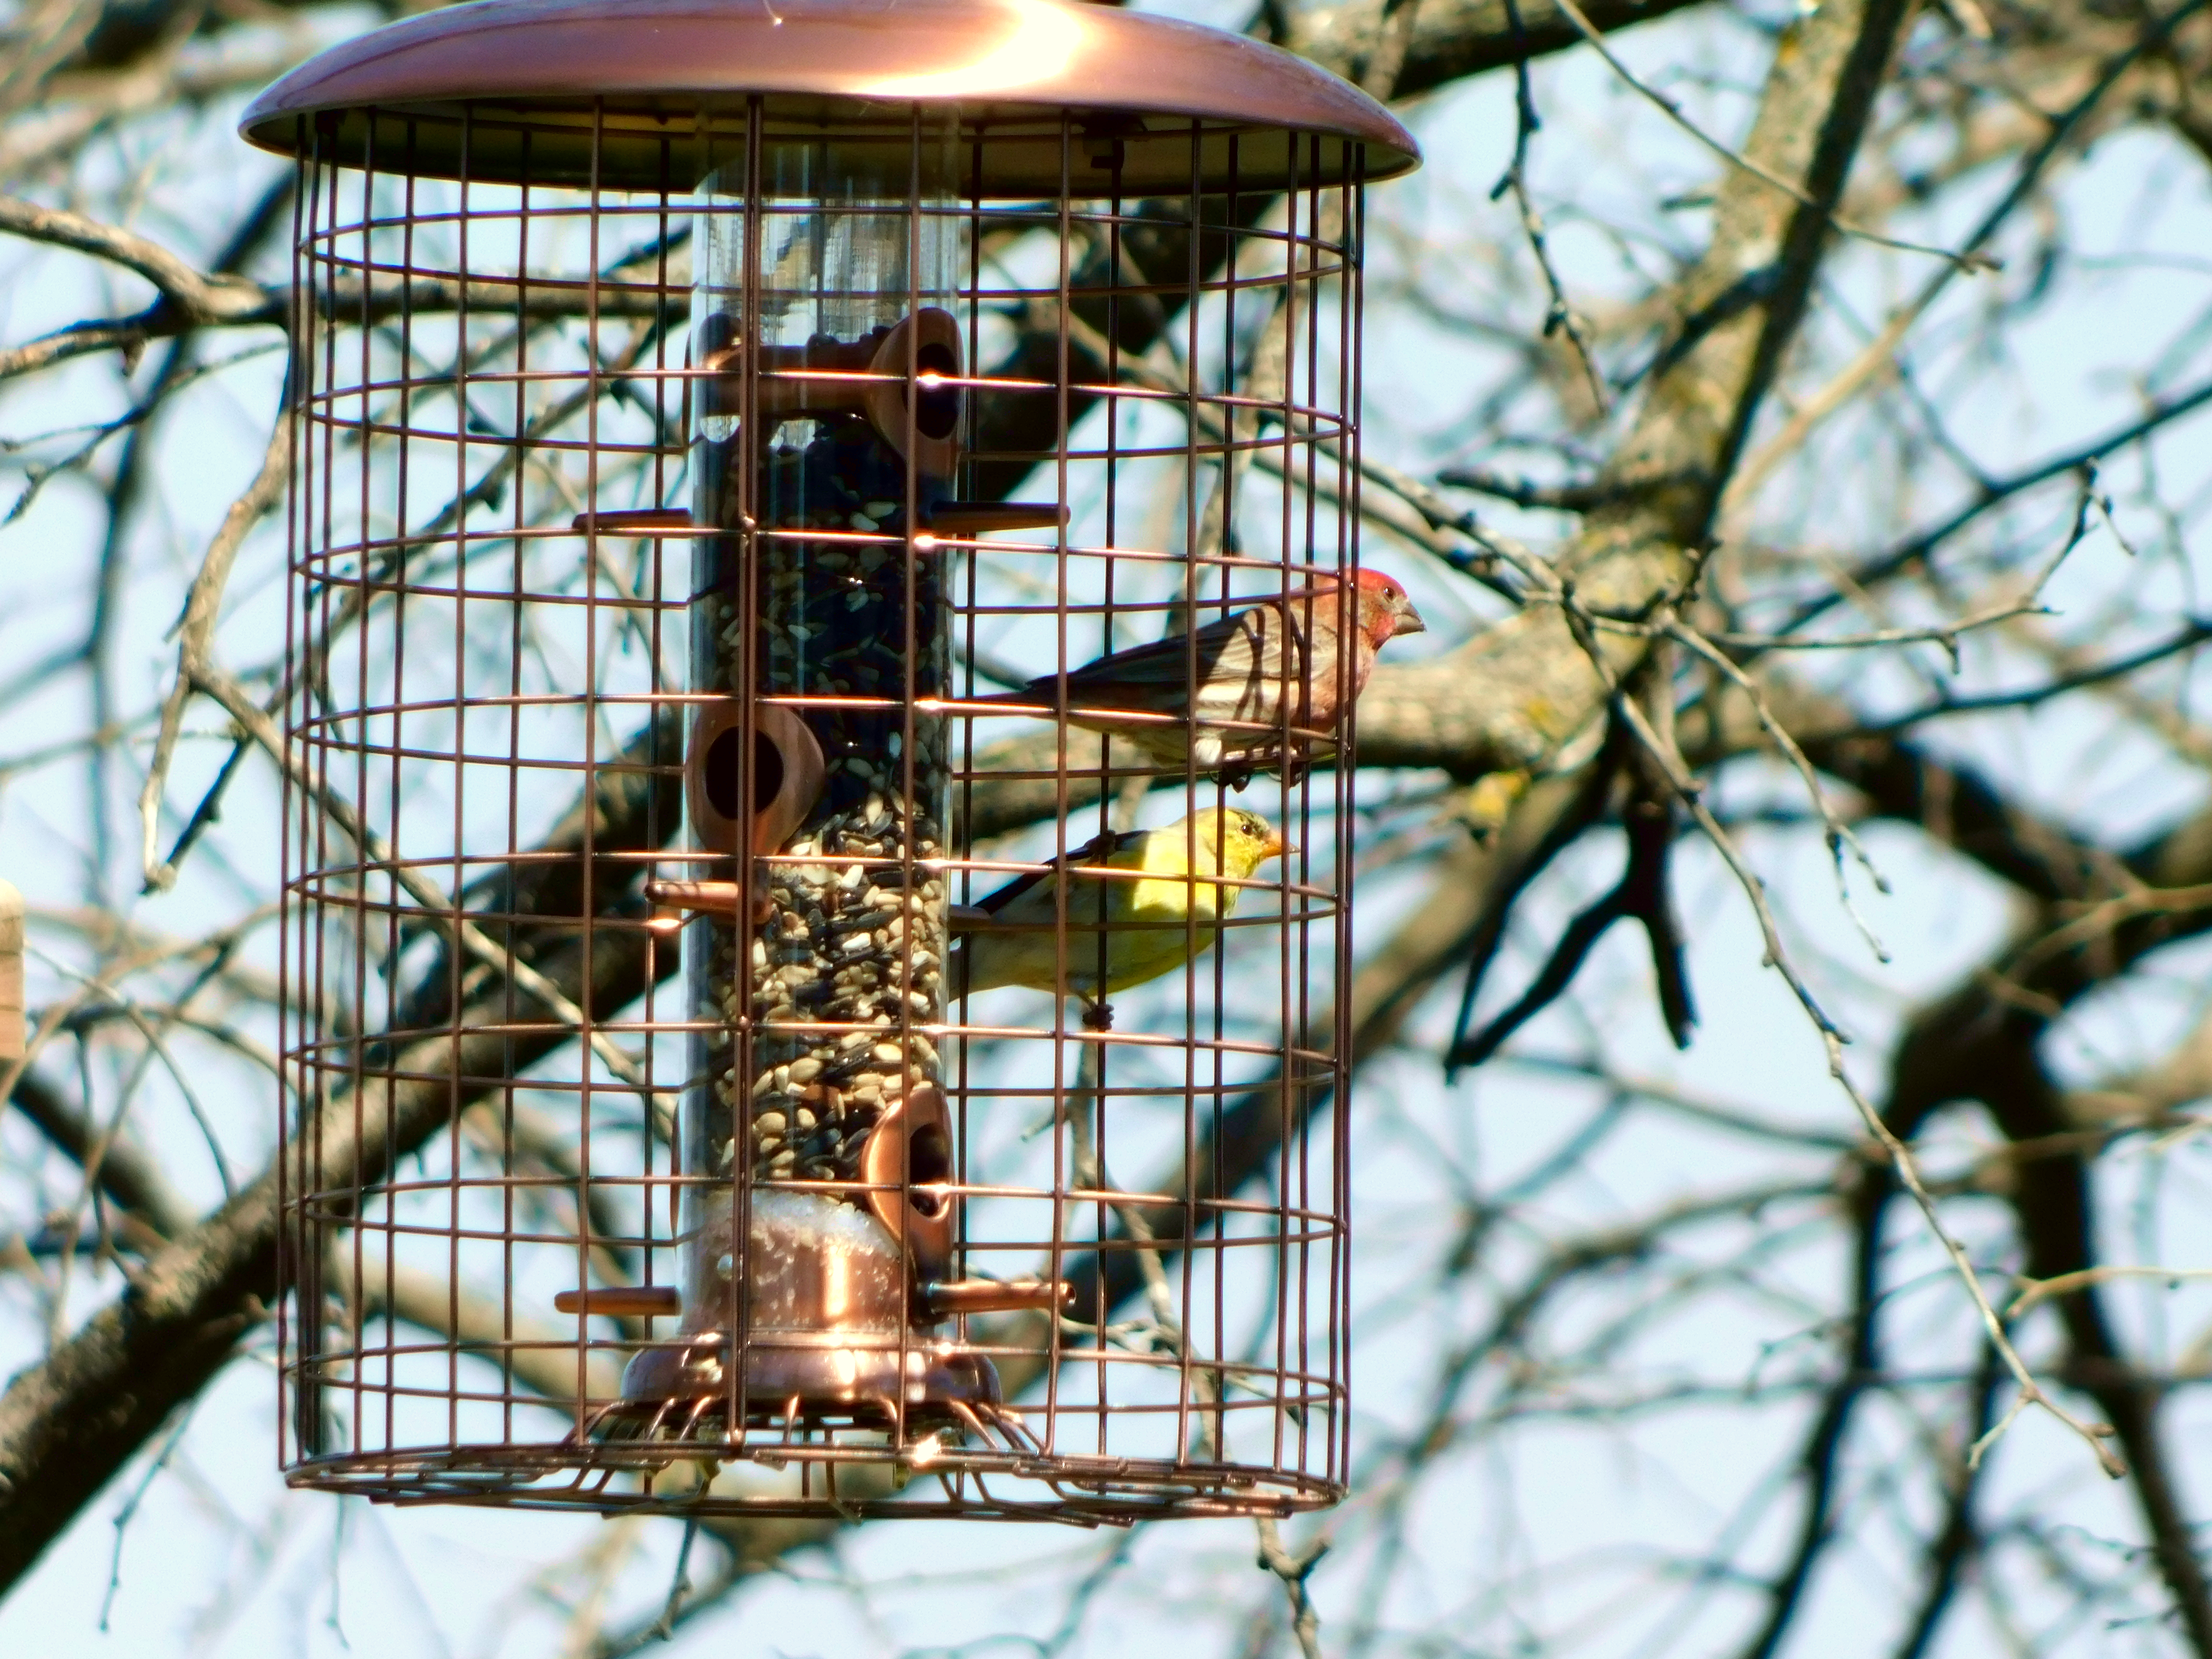 American Goldfinch and House Finch at feeder